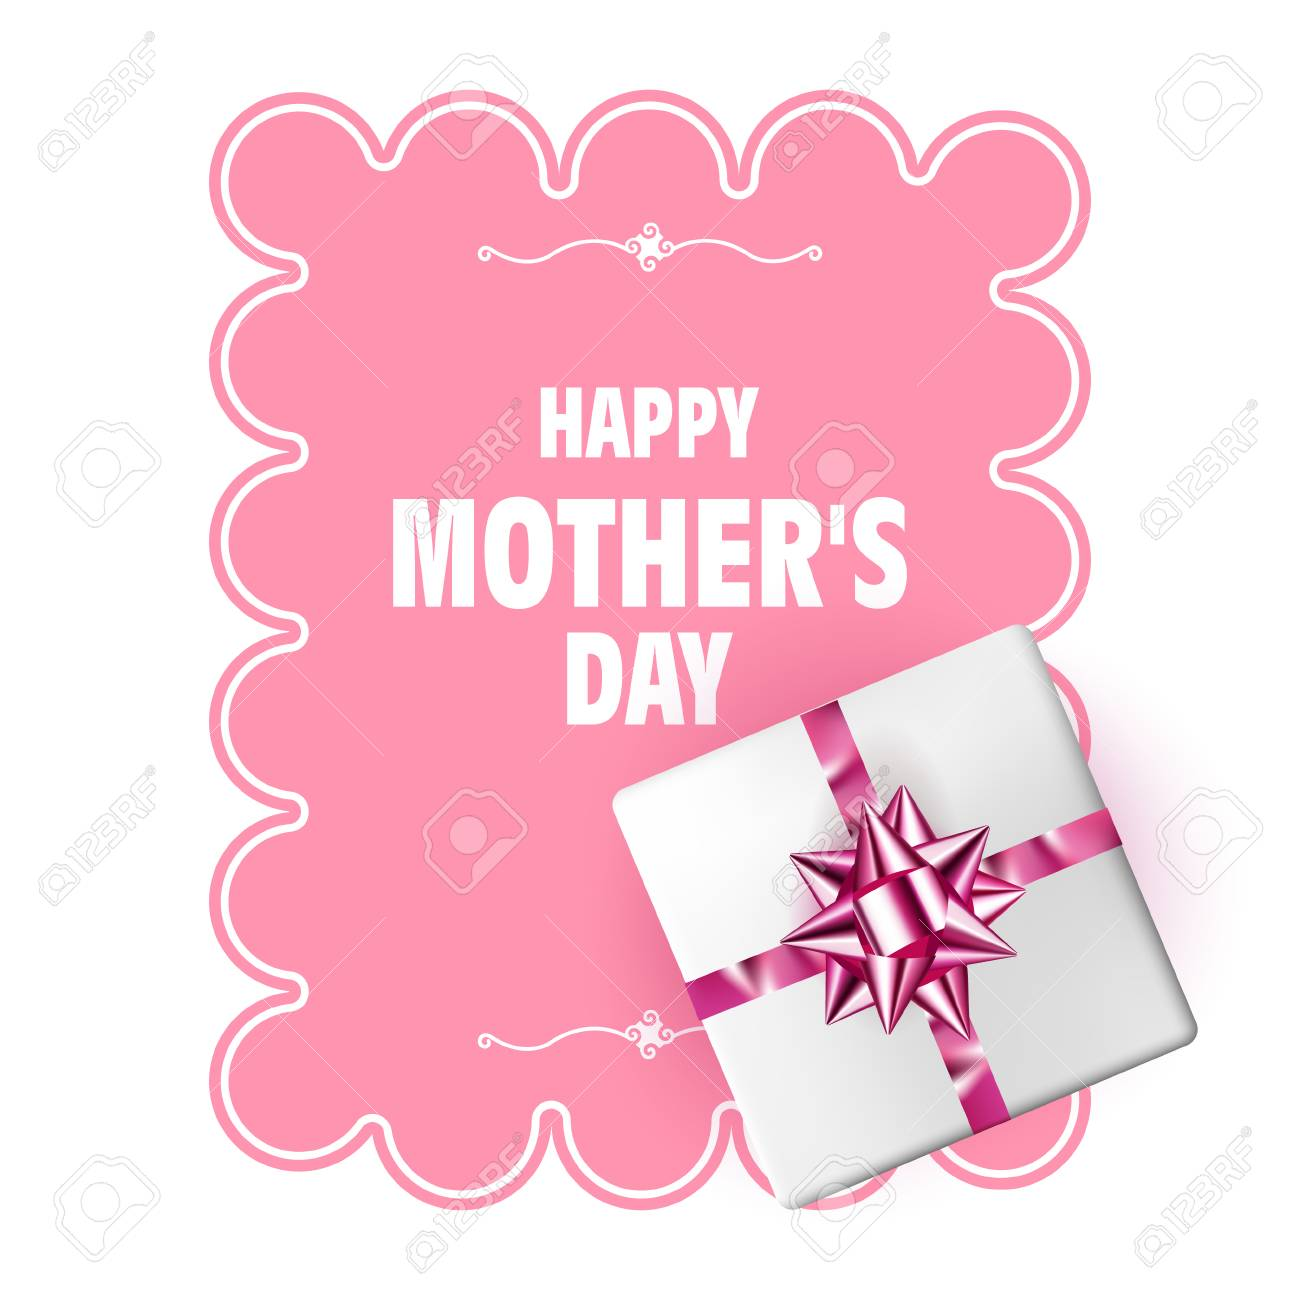 happy mothers day vector mother s day template with gift box